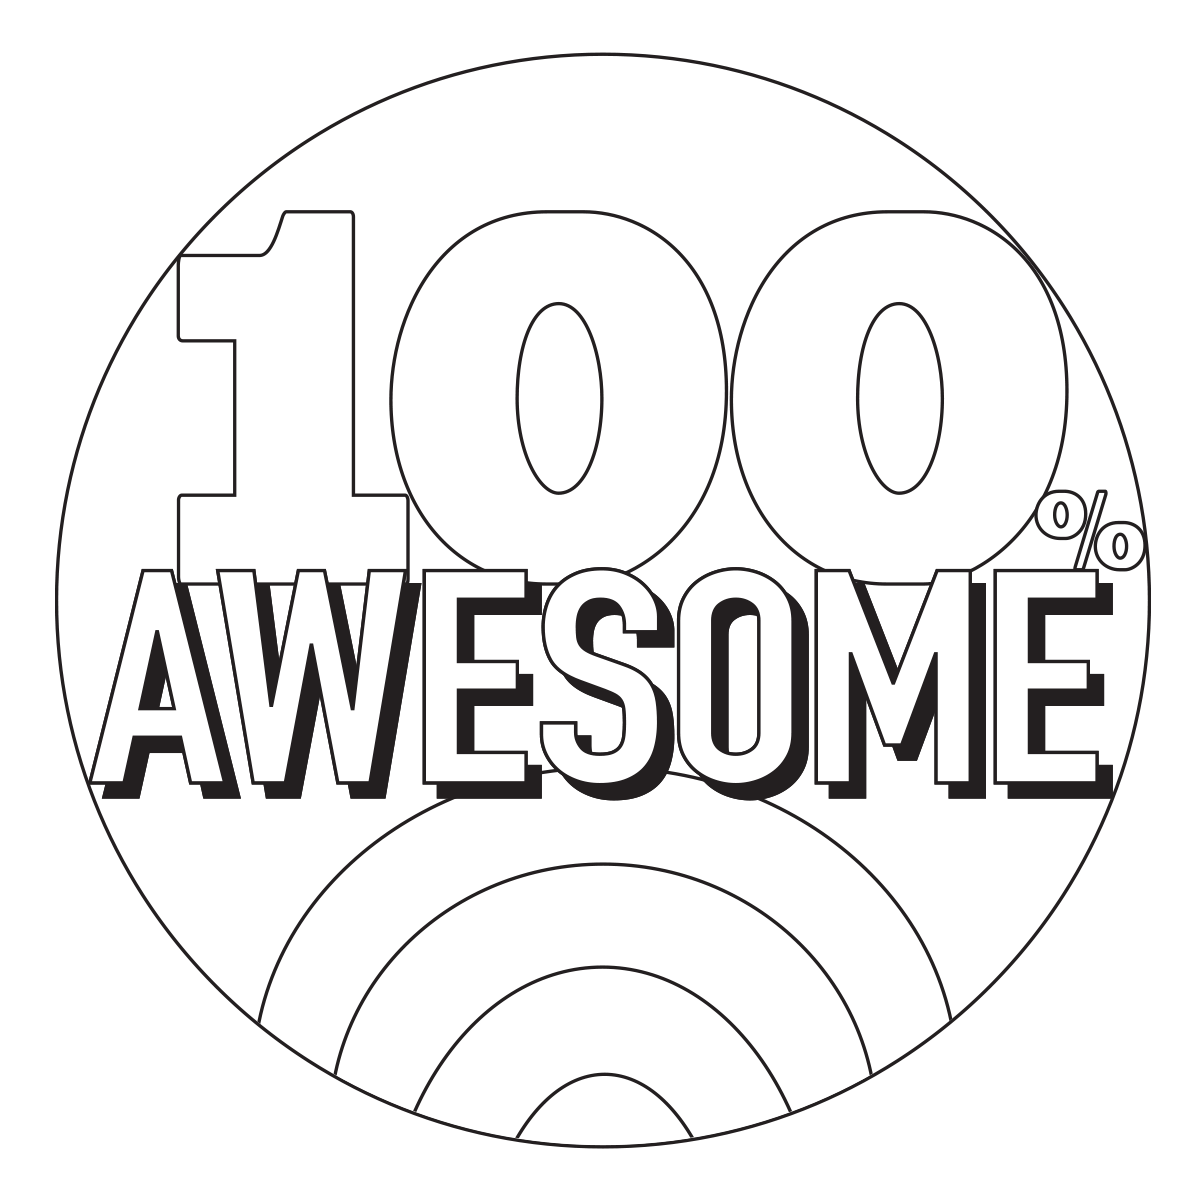 100 awesome coloring page for Awesome coloring page